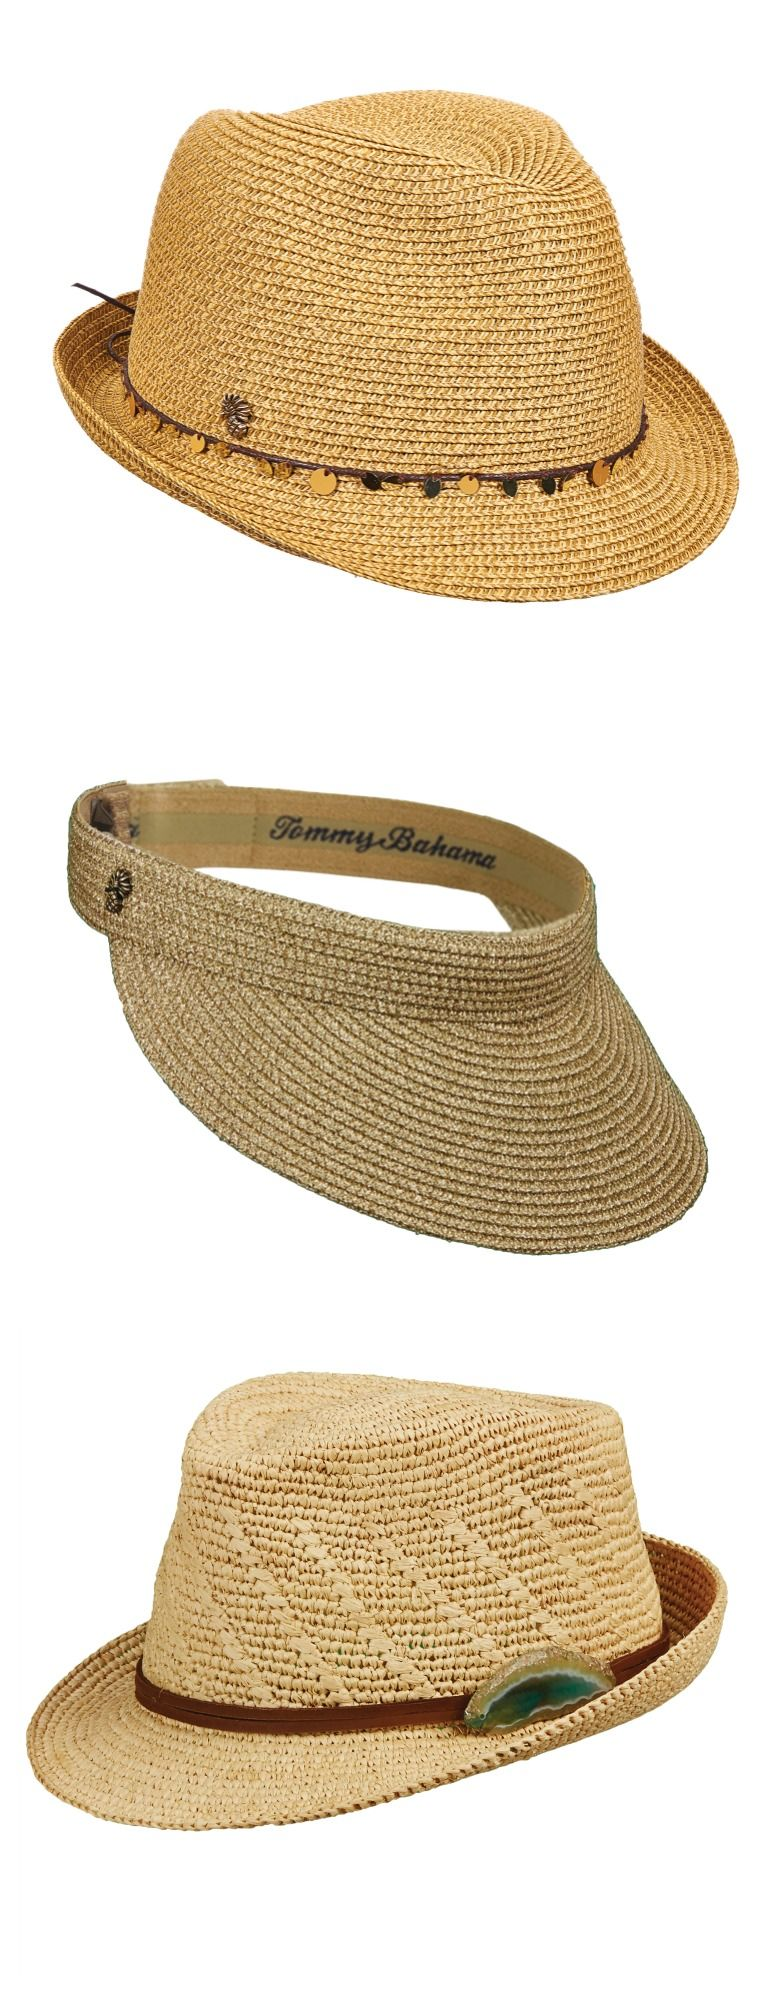 Enjoy your luxurious beach vacation with our Tommy Bahama hats and visors!  These hats will db1bdd9ad6c